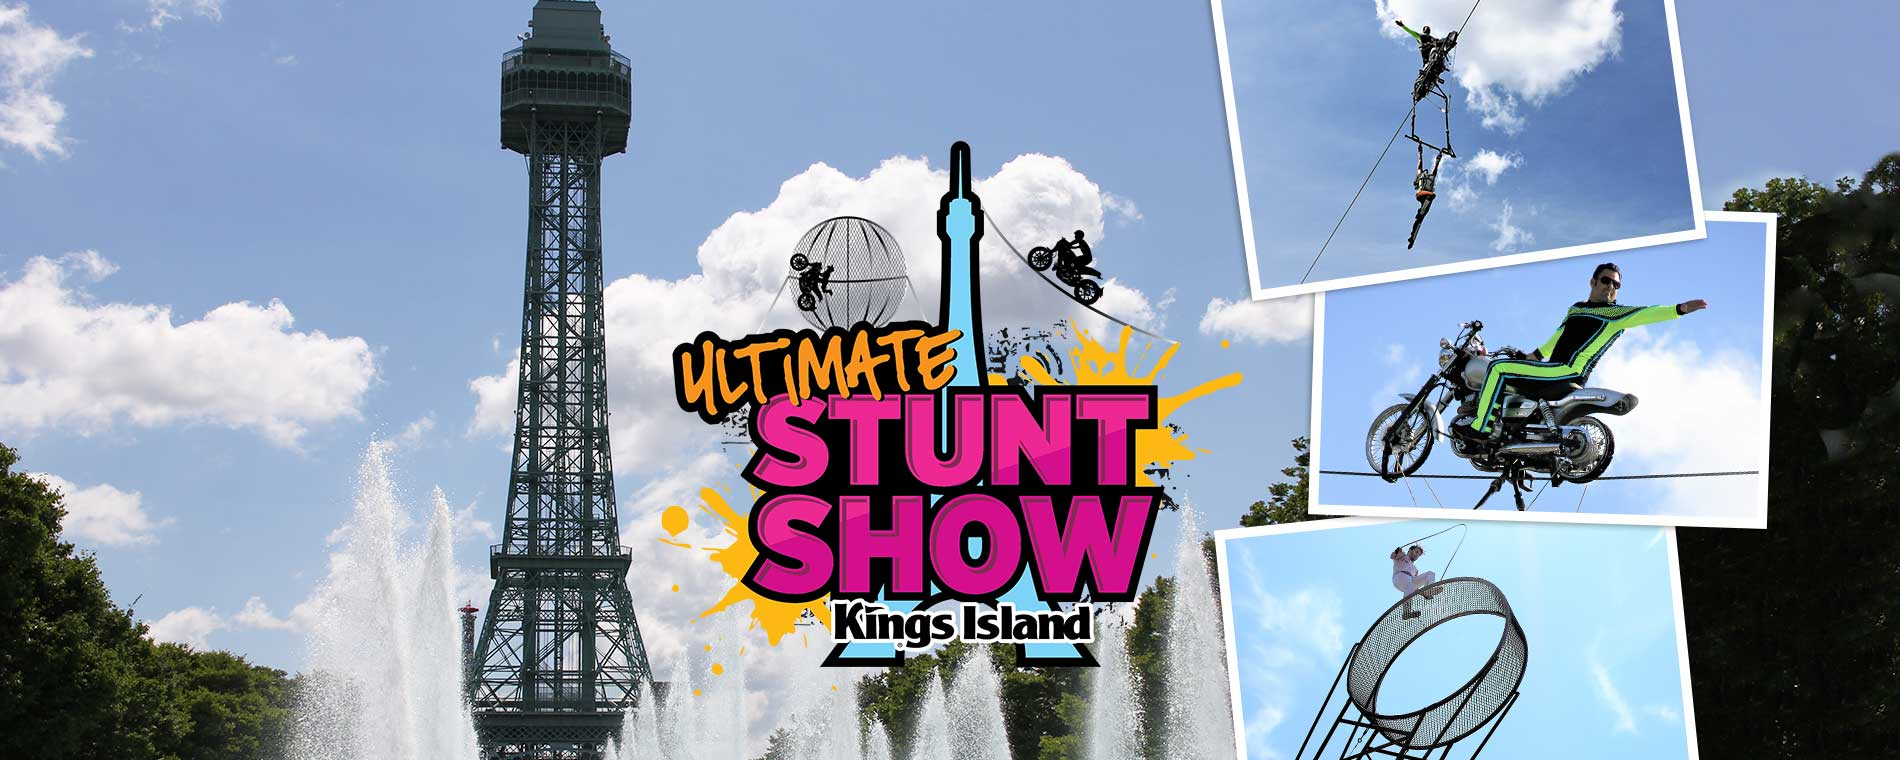 Ultimate Stunt Show